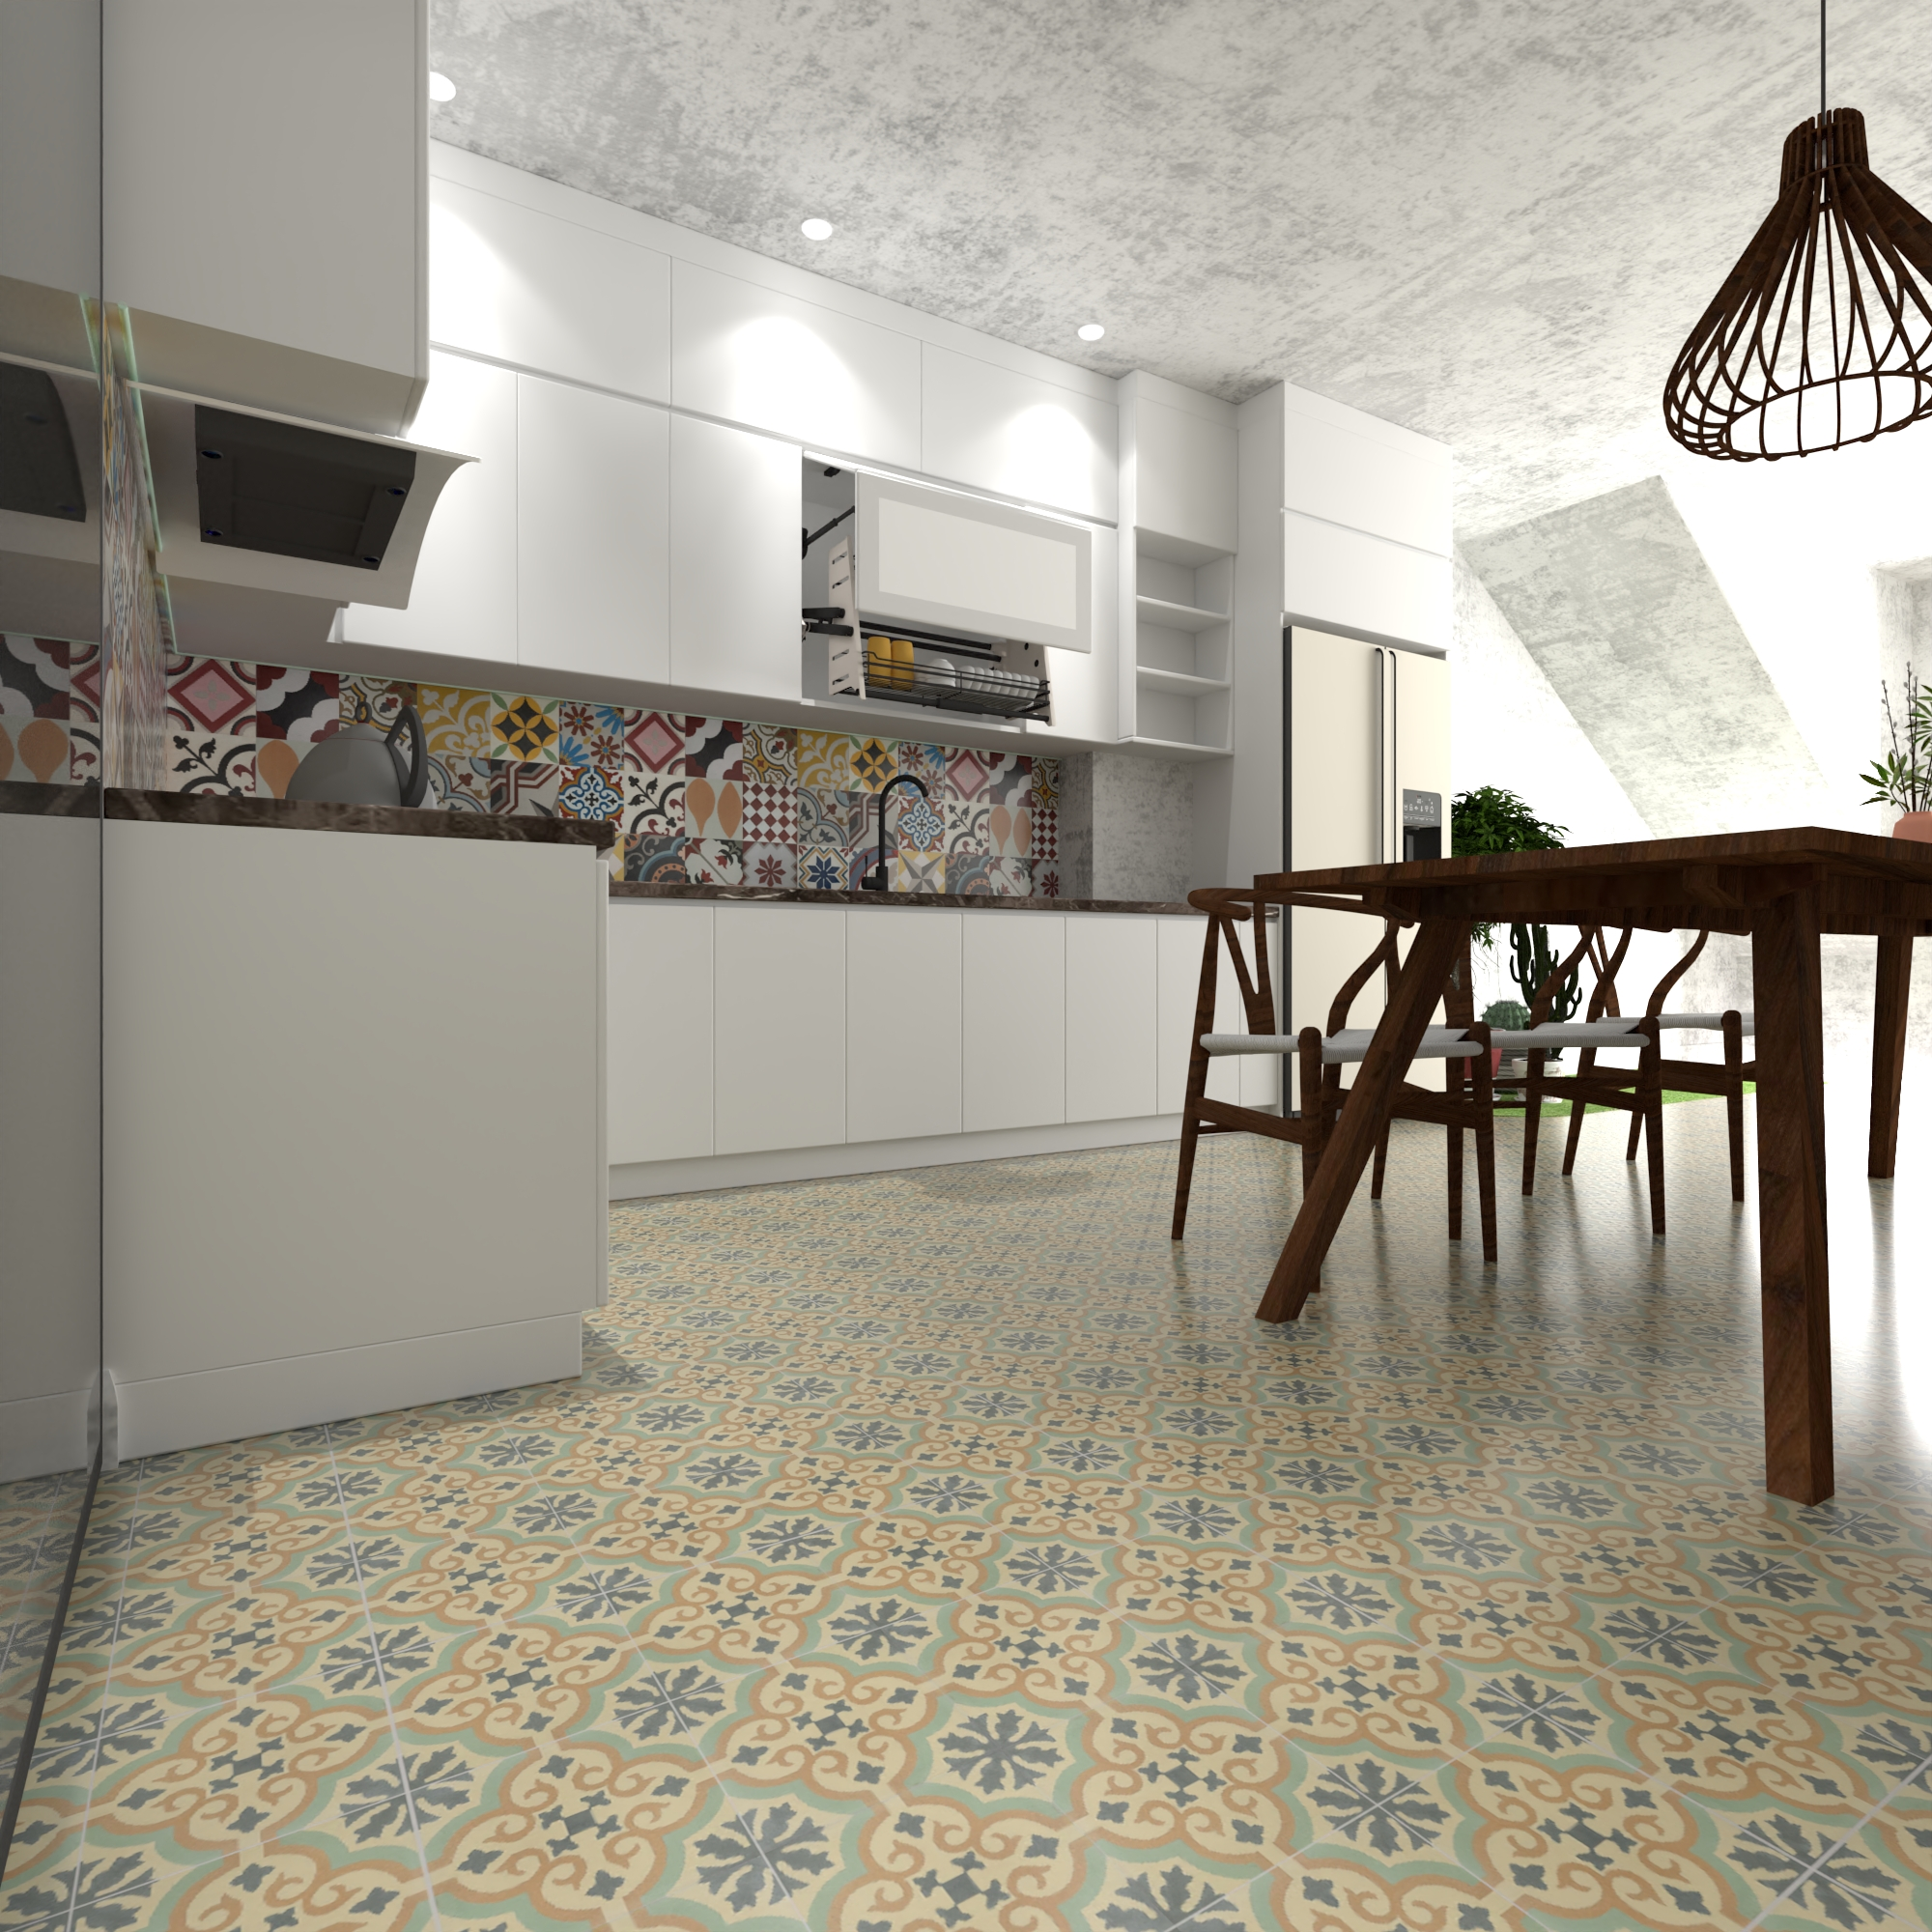 Ancient encaustic cement tile - a creative material that blends space, time, classical and modernity